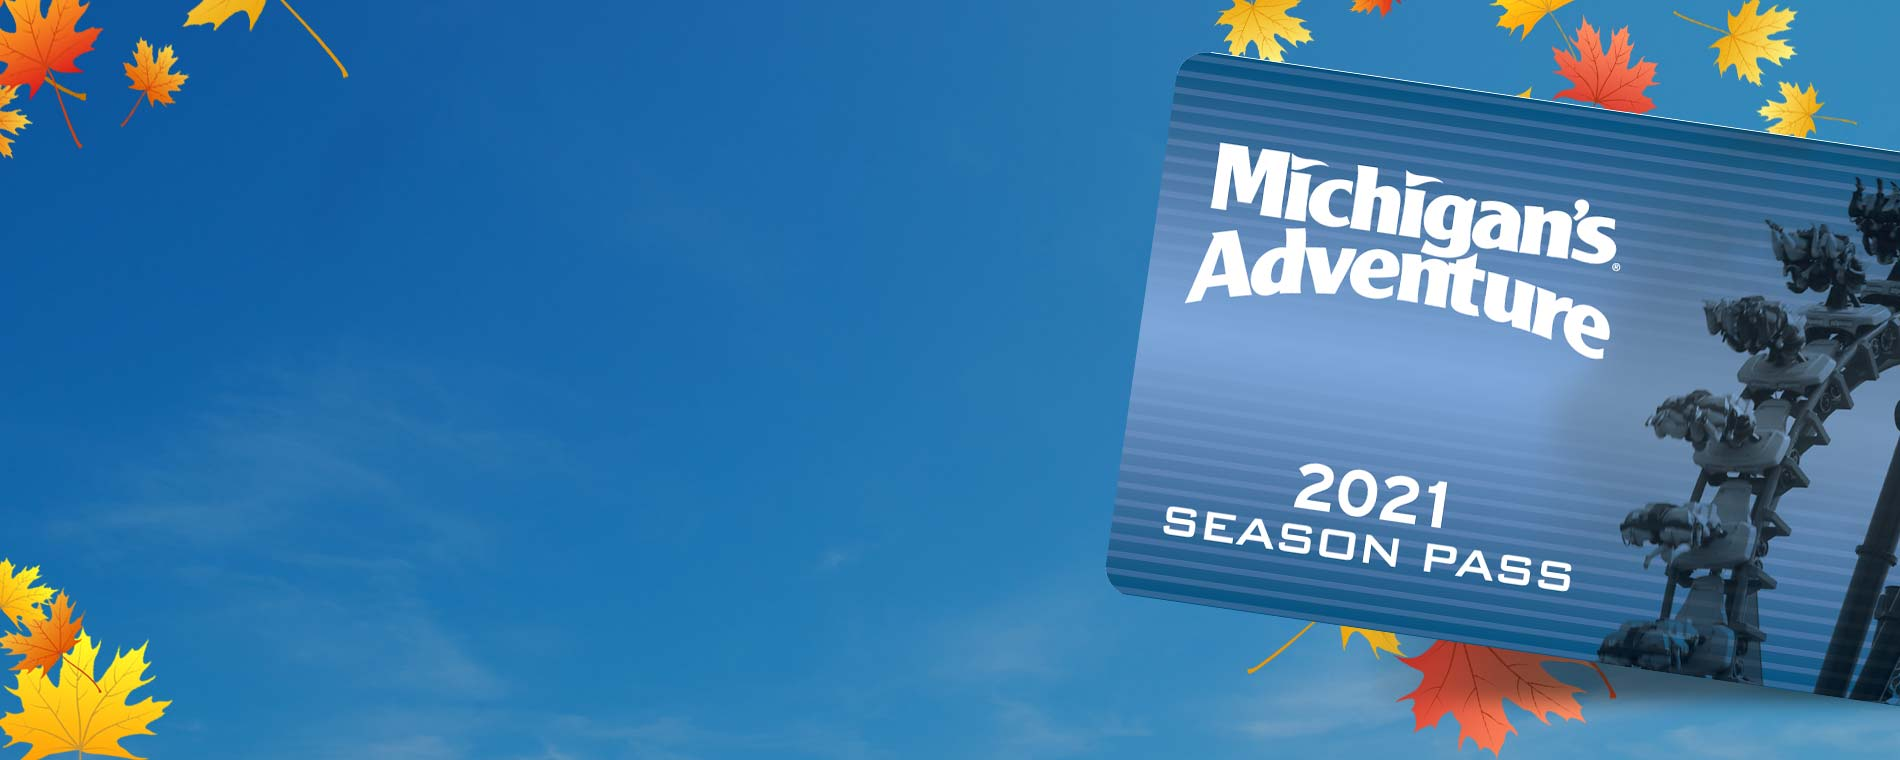 Michigan's Adventure Season Passes